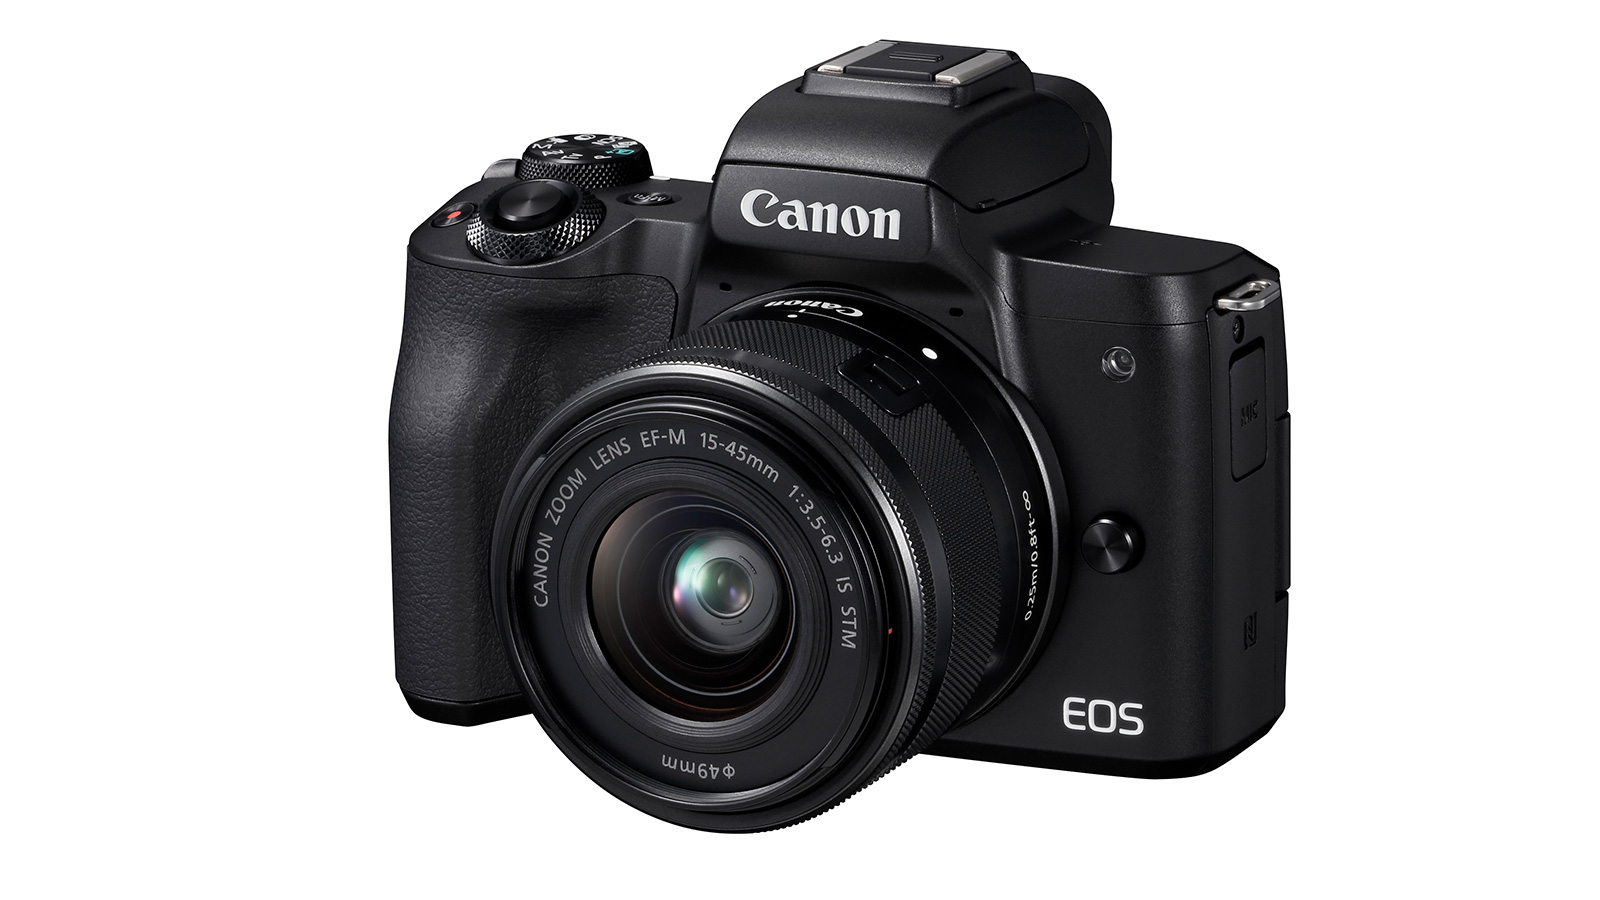 Canon's New M50 Mirrorless with 4K